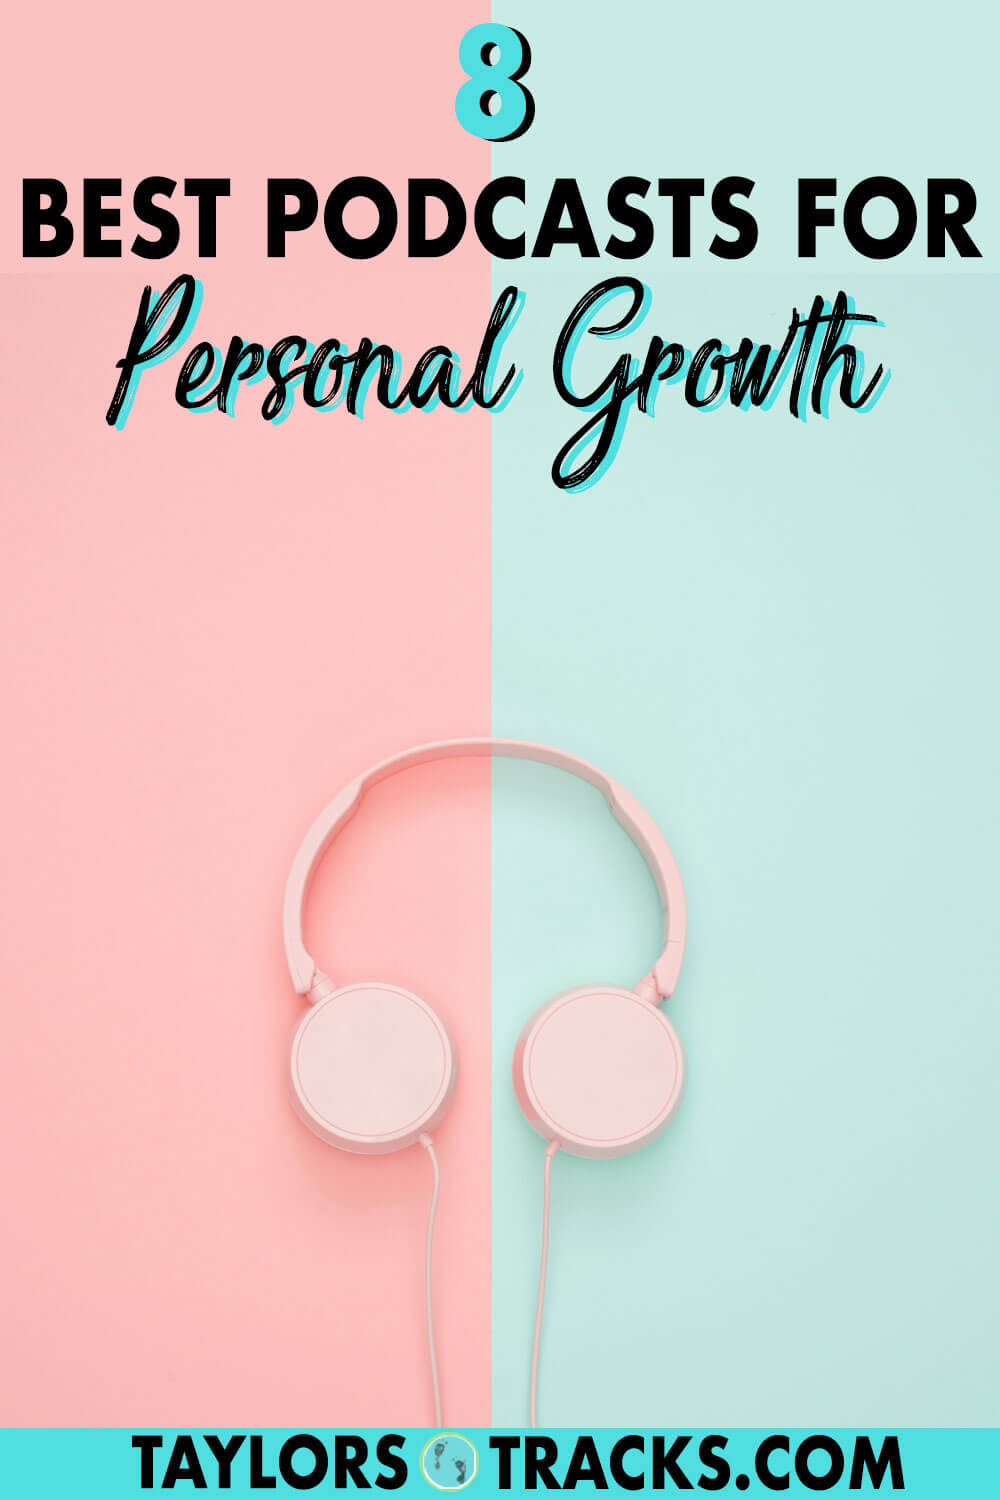 Personal growth doesn't have be all about doing the right things, it's also about being the right person. These personal development podcasts combine spirituality and self improvement to balance the masculine and feminine that is needed to live a life of getting shit done with ease. Click to find your new favourite self growth podcast!